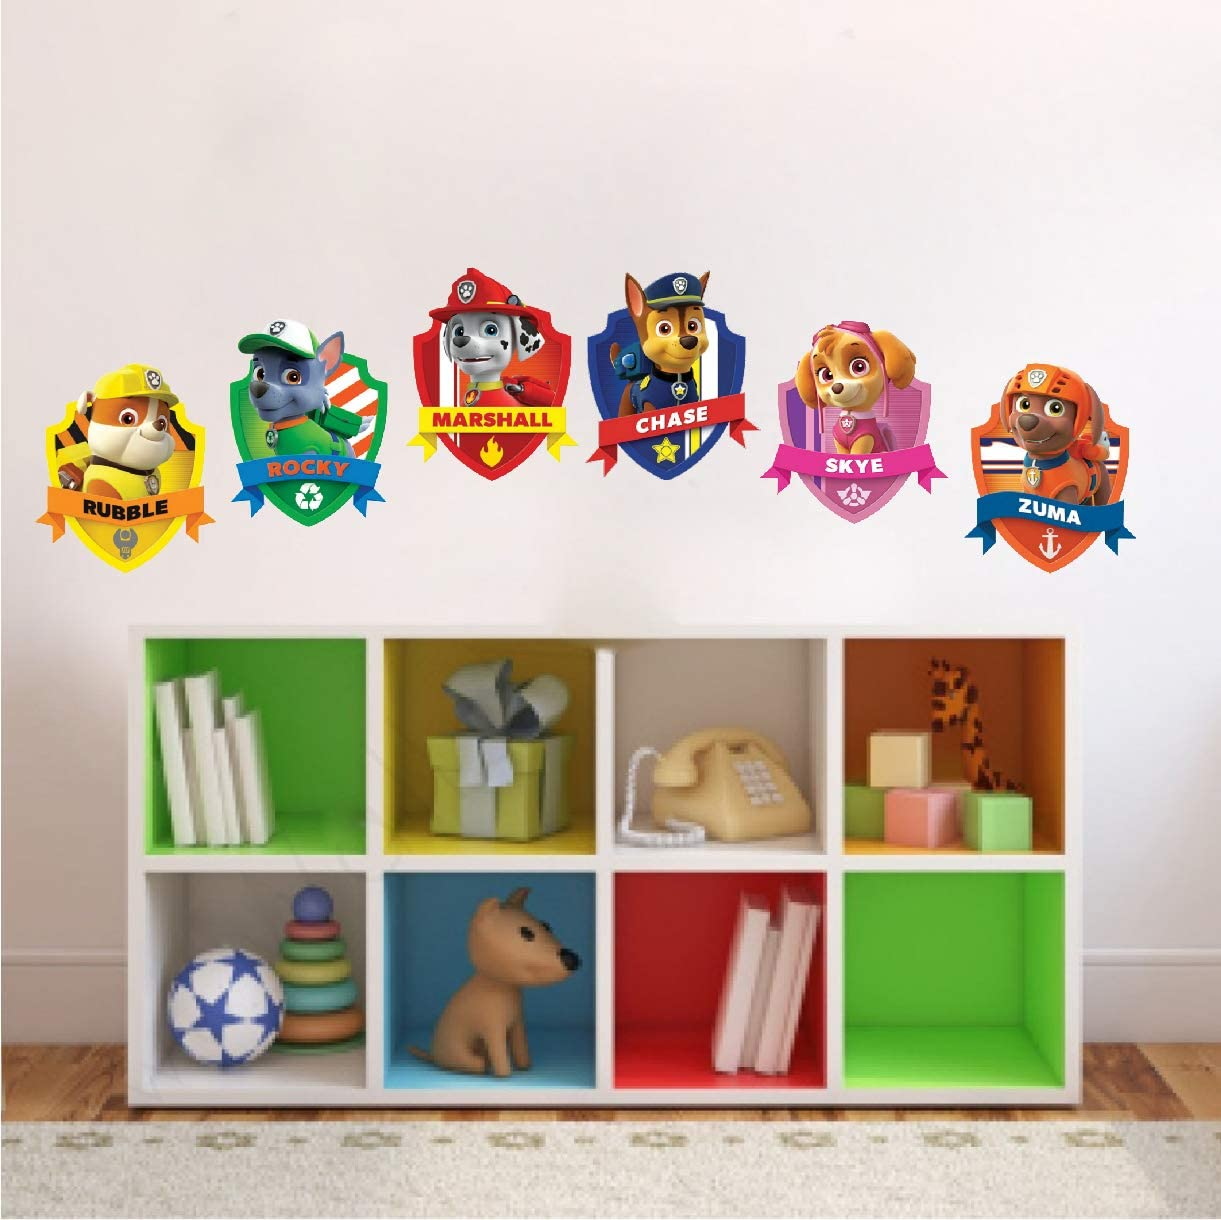 Wall Decals Kids Cartoon Art - Paw Patrol Kids for Bedroom Apartment Wall Decor Toys Kids Nursery Removable Decoration TV Show Wall Mural, s20